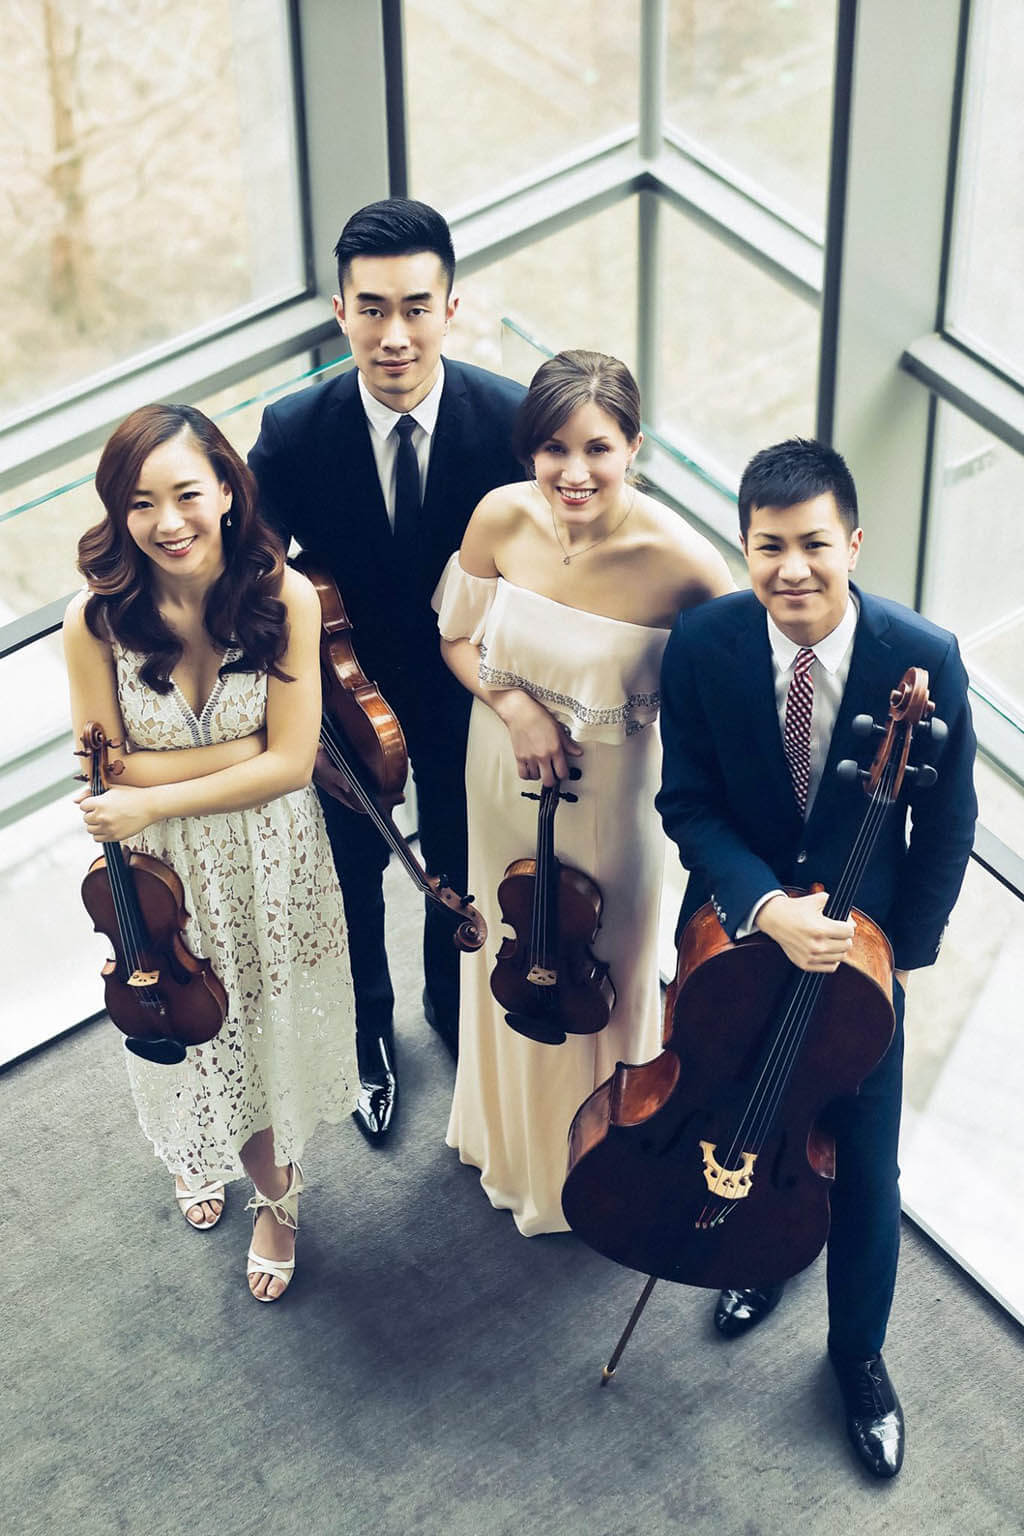 The reconfigued Rolston String Quartet will make their first public appearance at the RCM on April 8 (Photo: TianXiao Zhang)